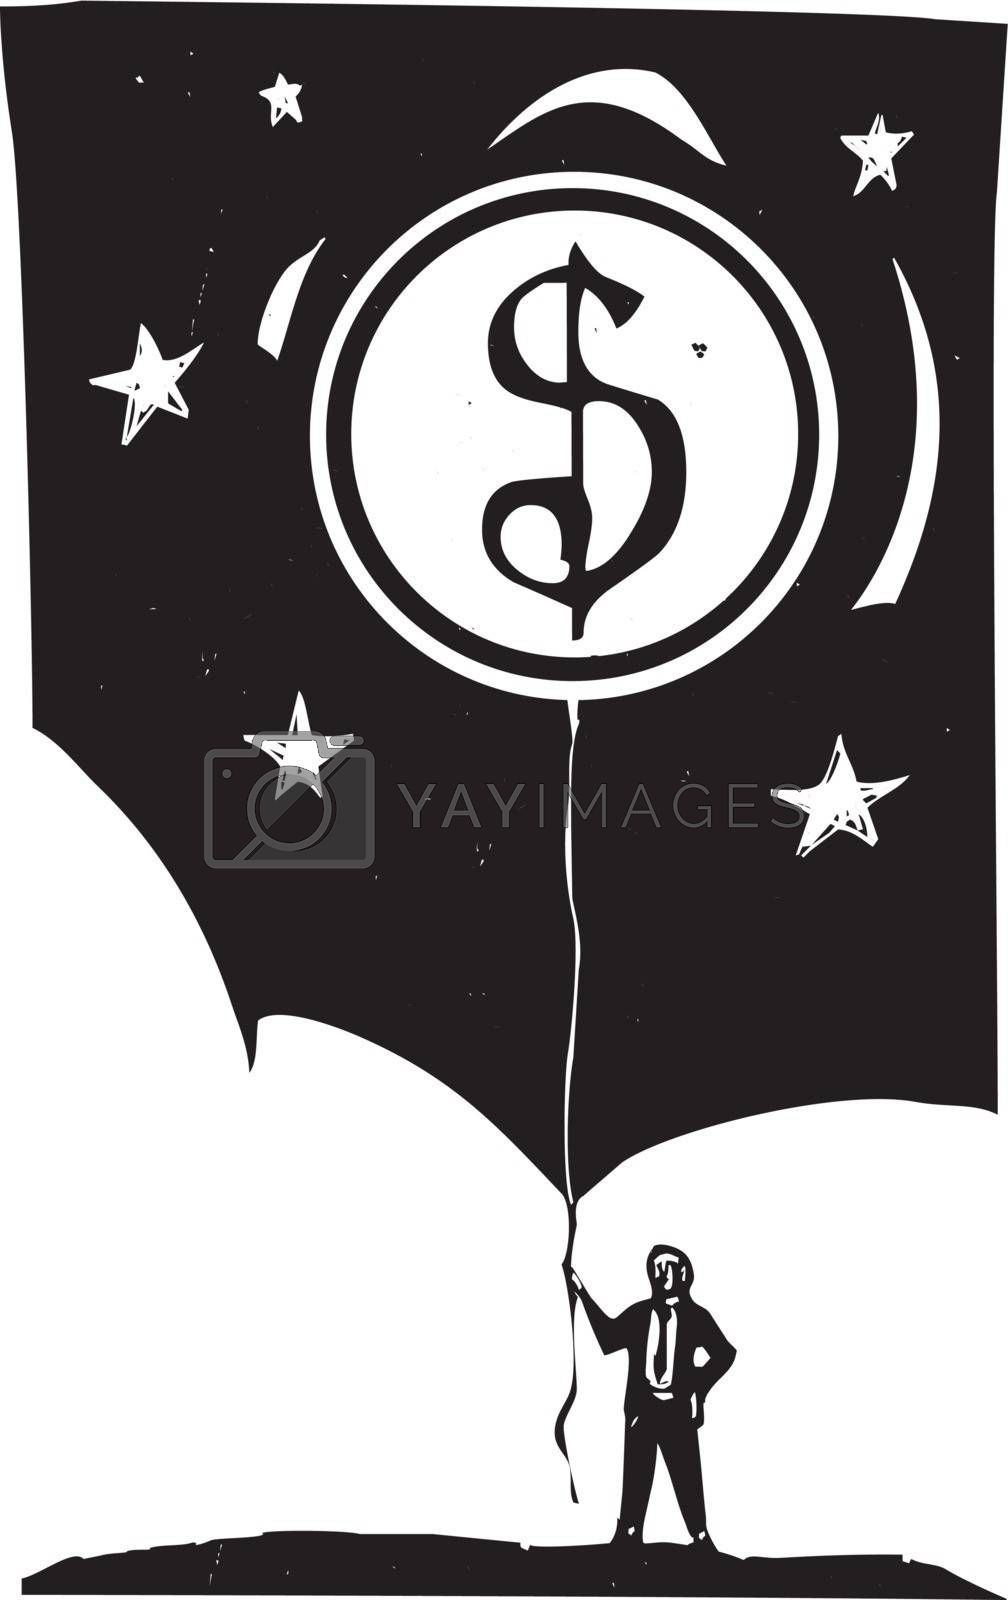 Woodcut style image of a man in a business suit holding a coin shaped balloon.